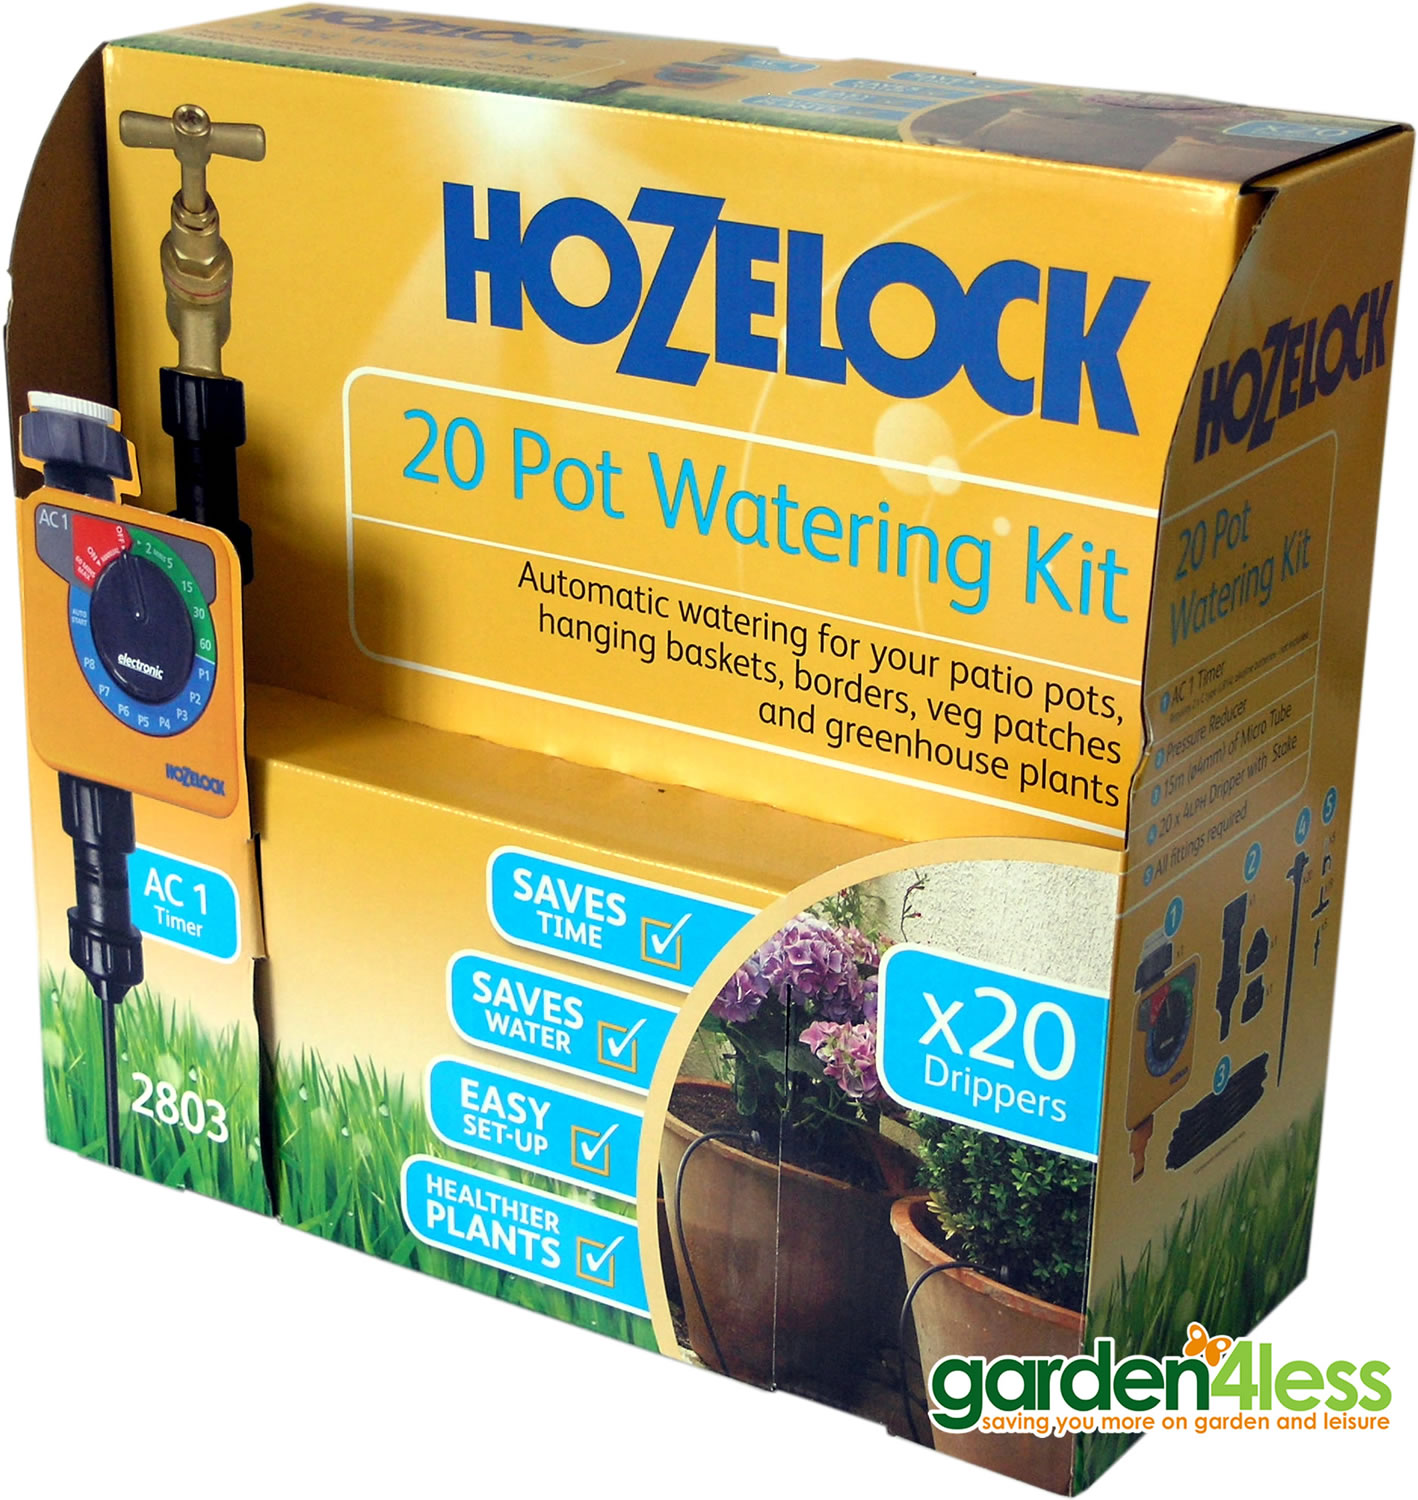 Extra image of Hozelock 20 Pot Automatic Watering Kit with AC1 Timer